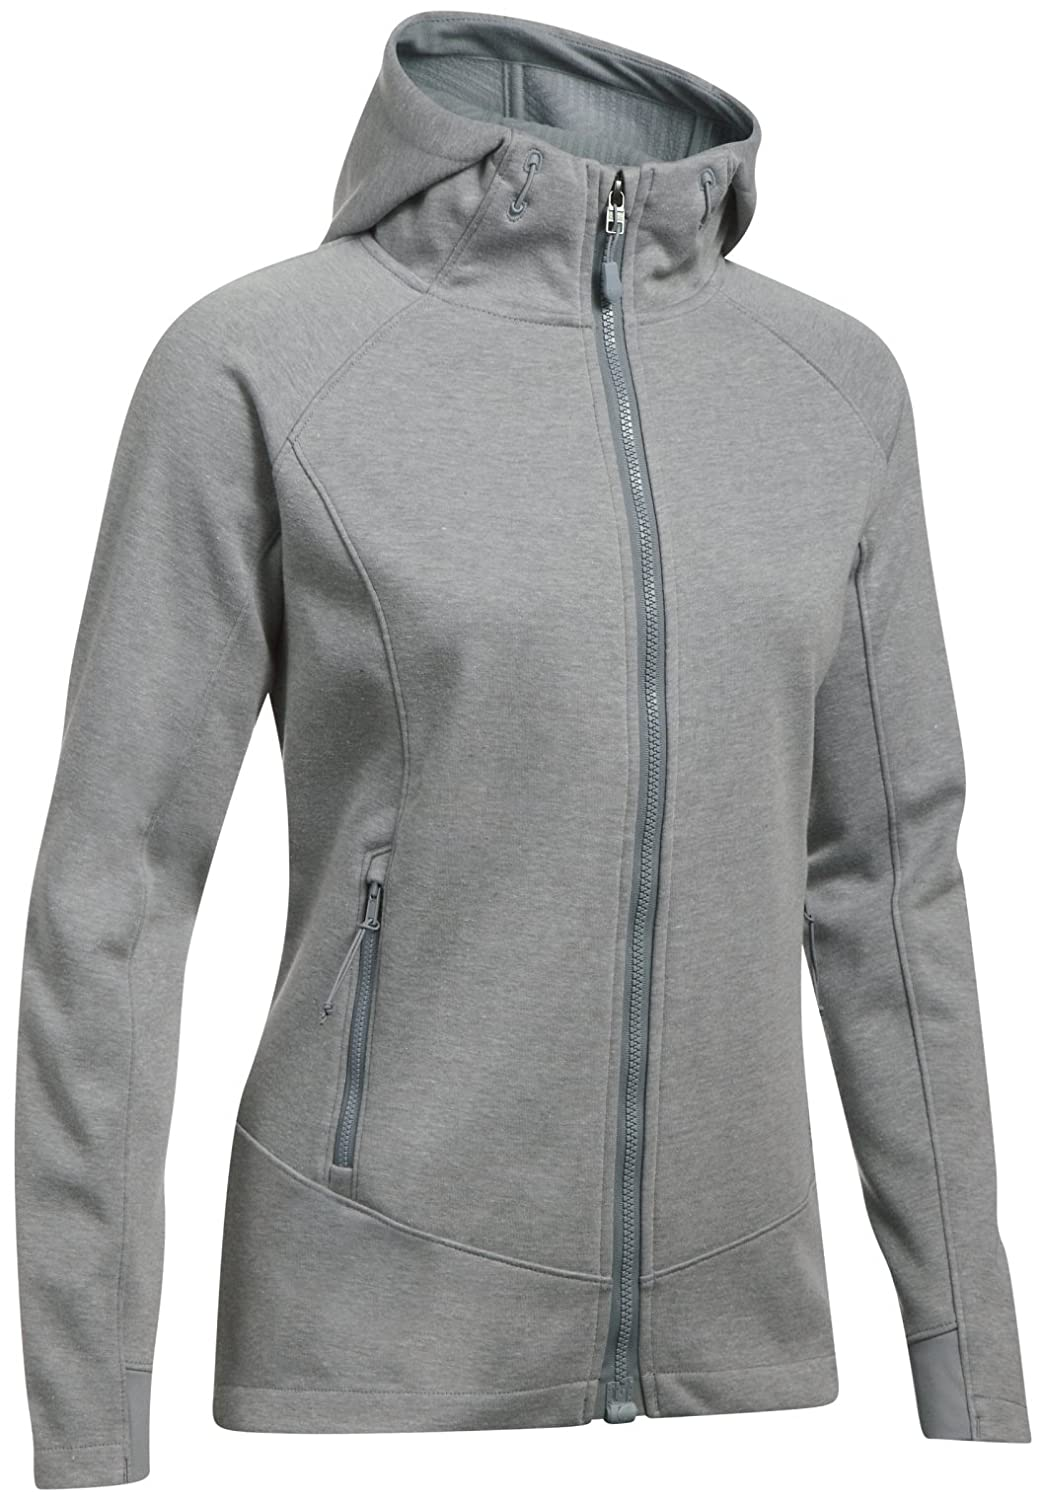 Under Armour Women's ColdGear Dobson Softershell Under Armour Outdoors